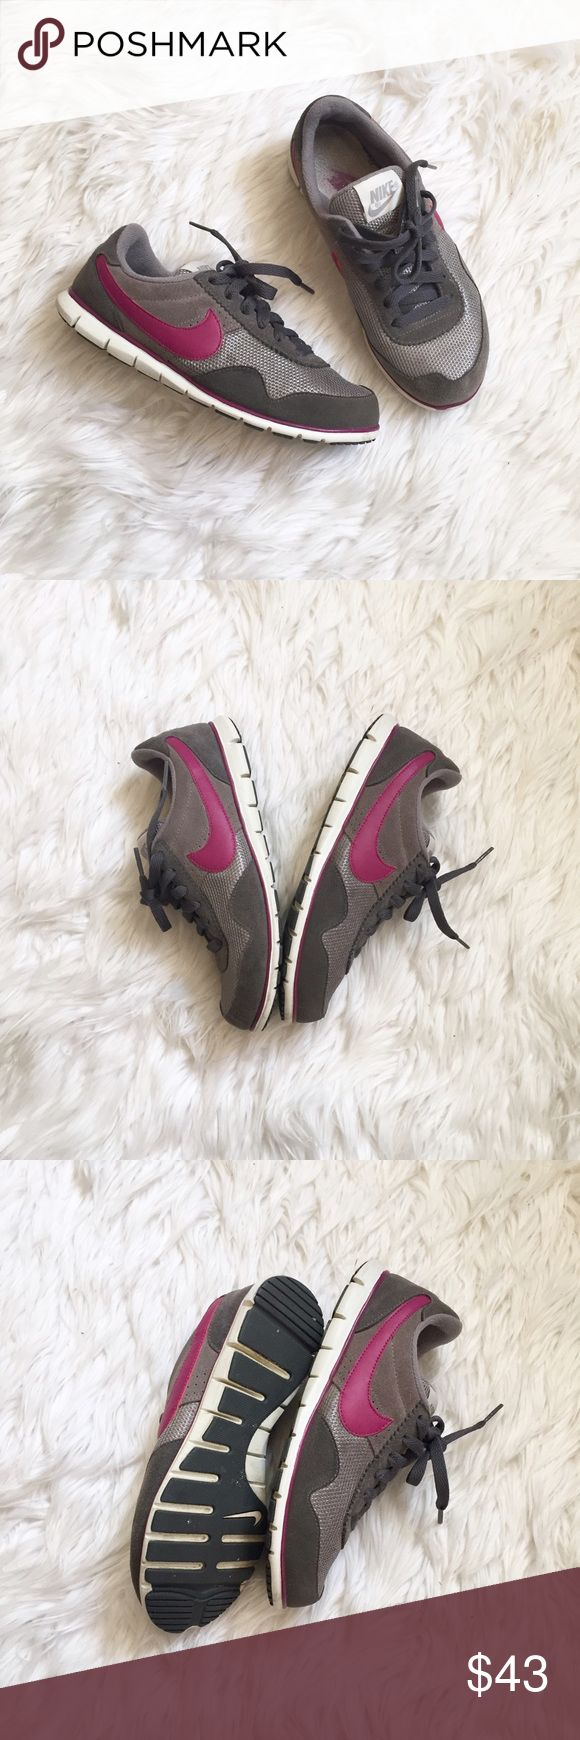 💠 Cute Nike Sneakers Pre loved condition, super comfortable, mesh details Nike Shoes